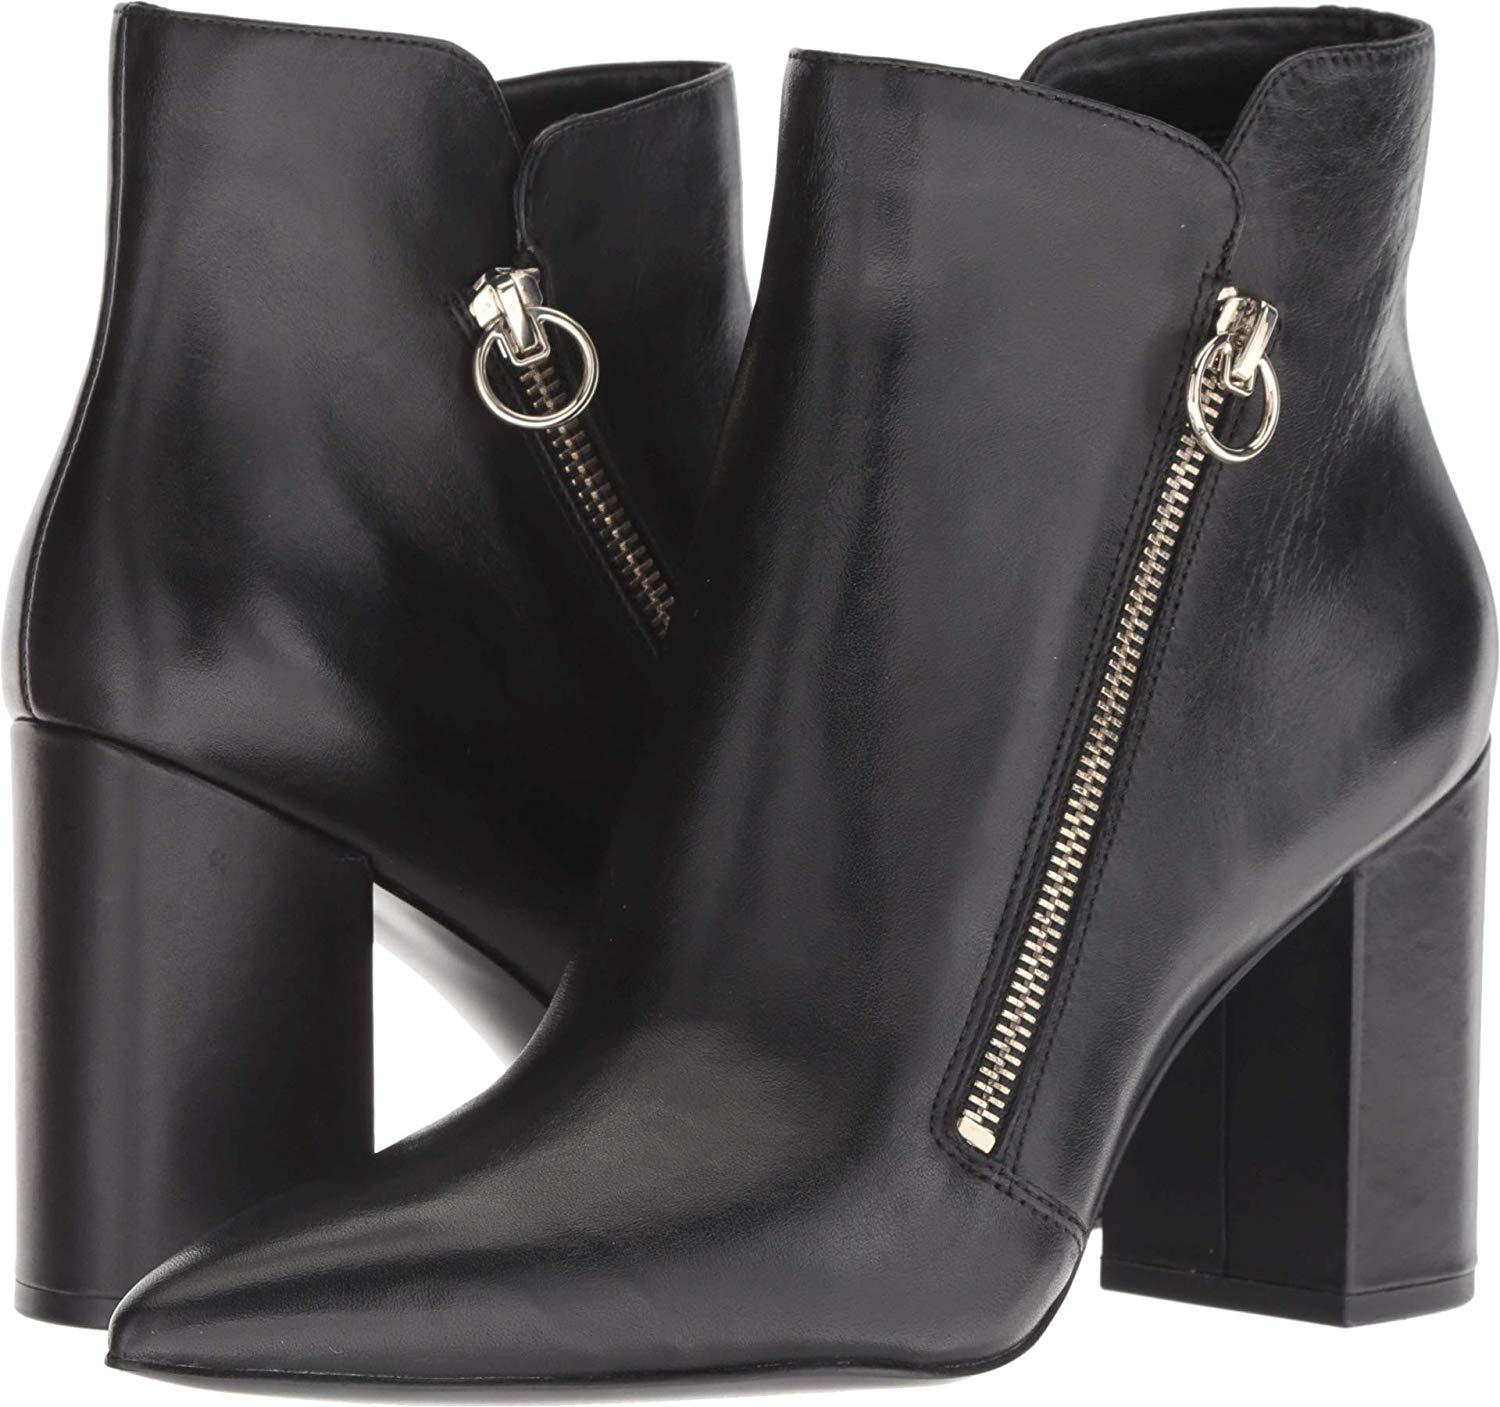 Nine West Russity Leather Ankle Boot Black Leather